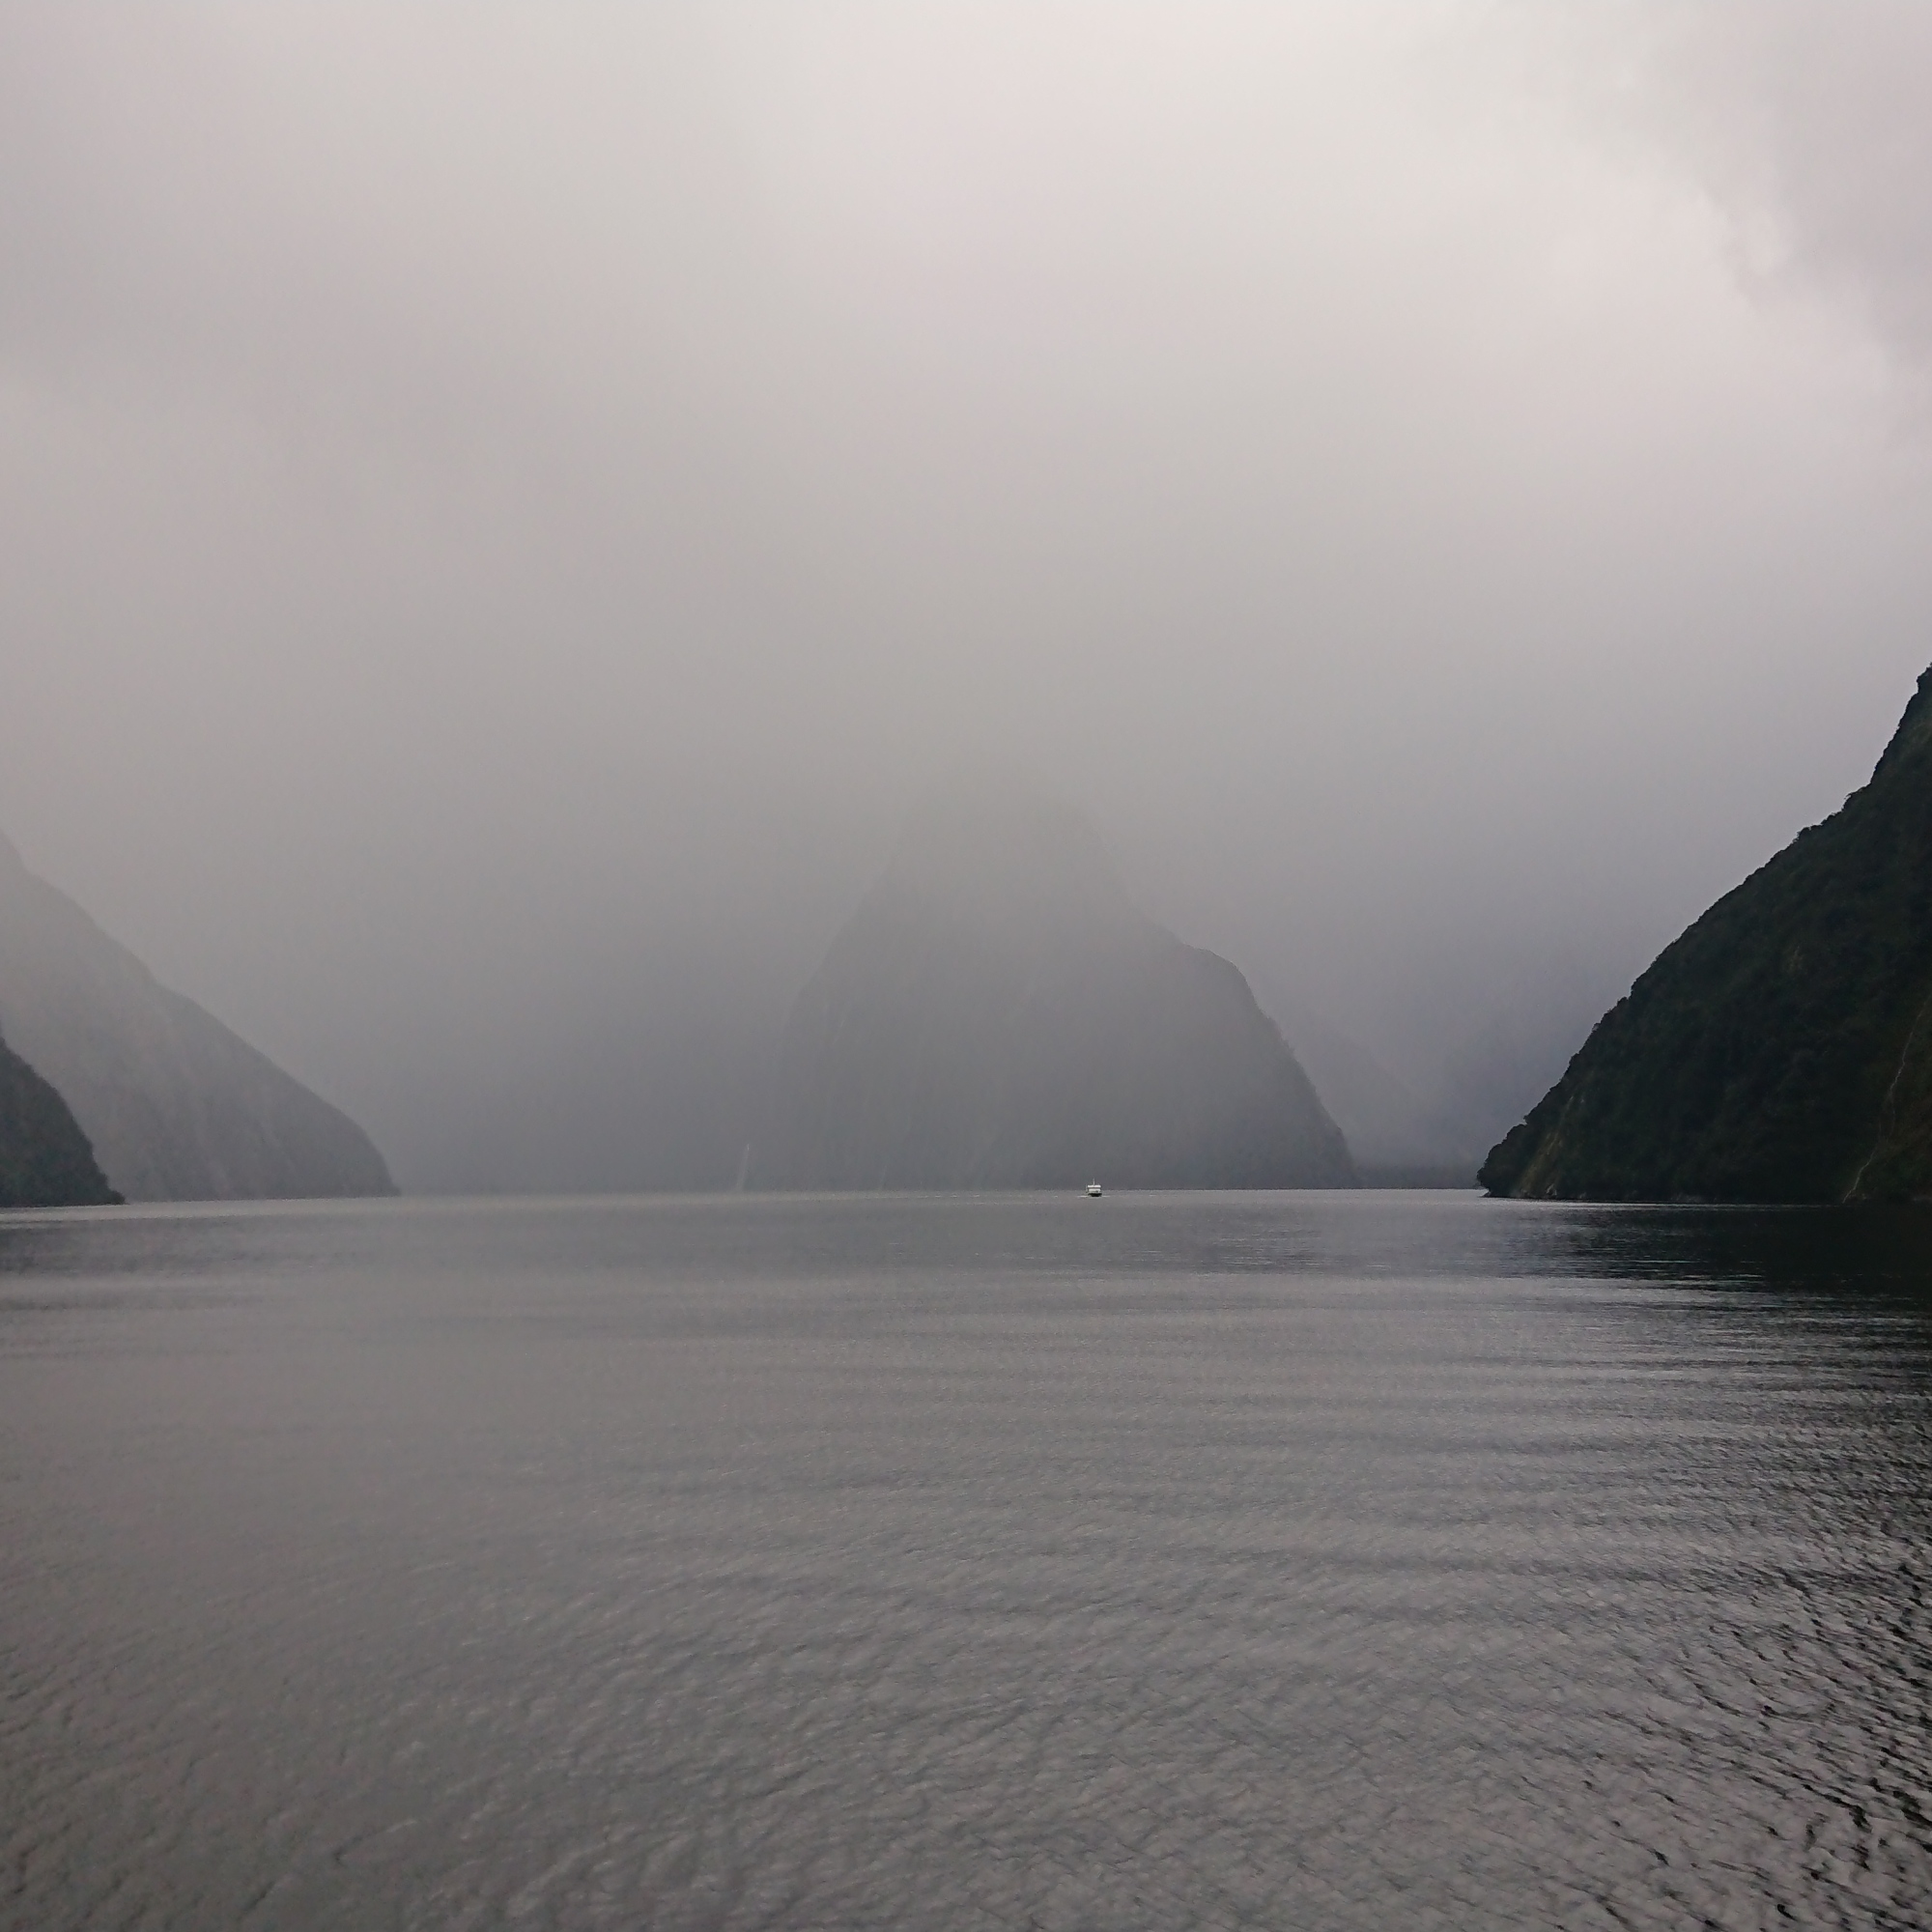 Shapes emerging from the mist in Milford Sound